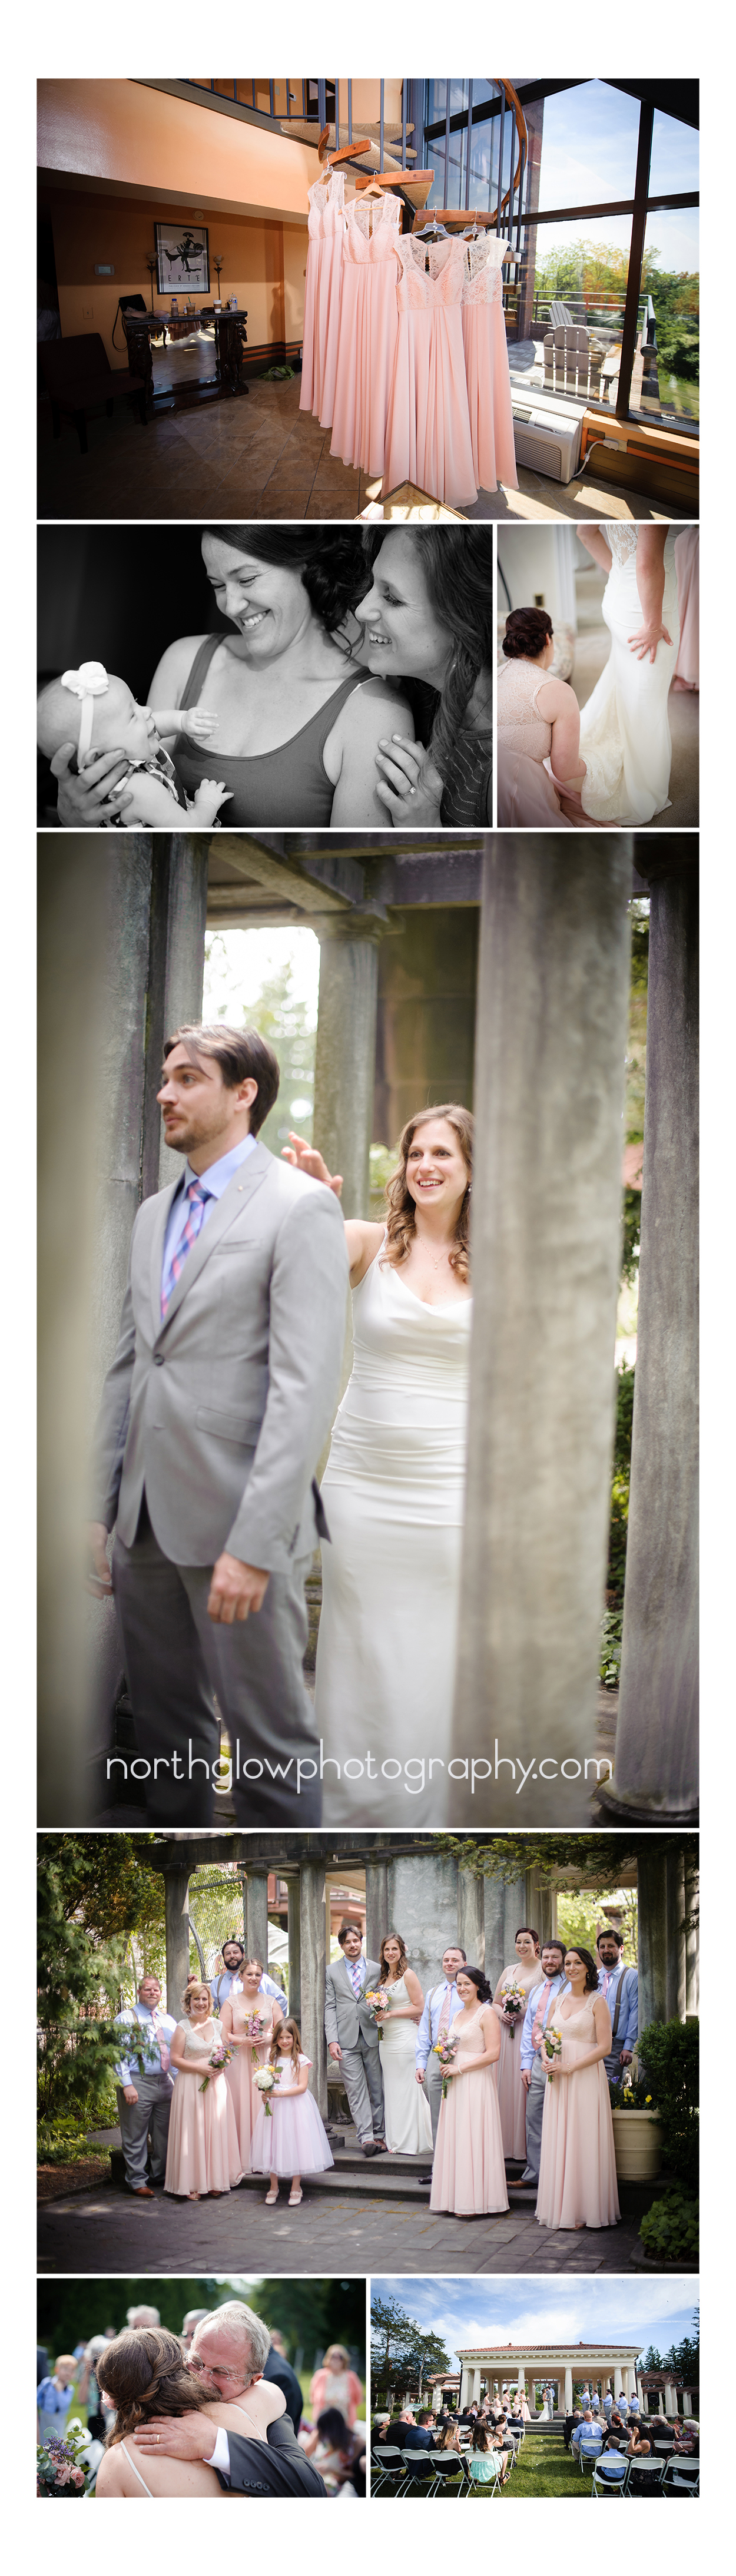 Meagan and Ryan | NorthGlow Photography